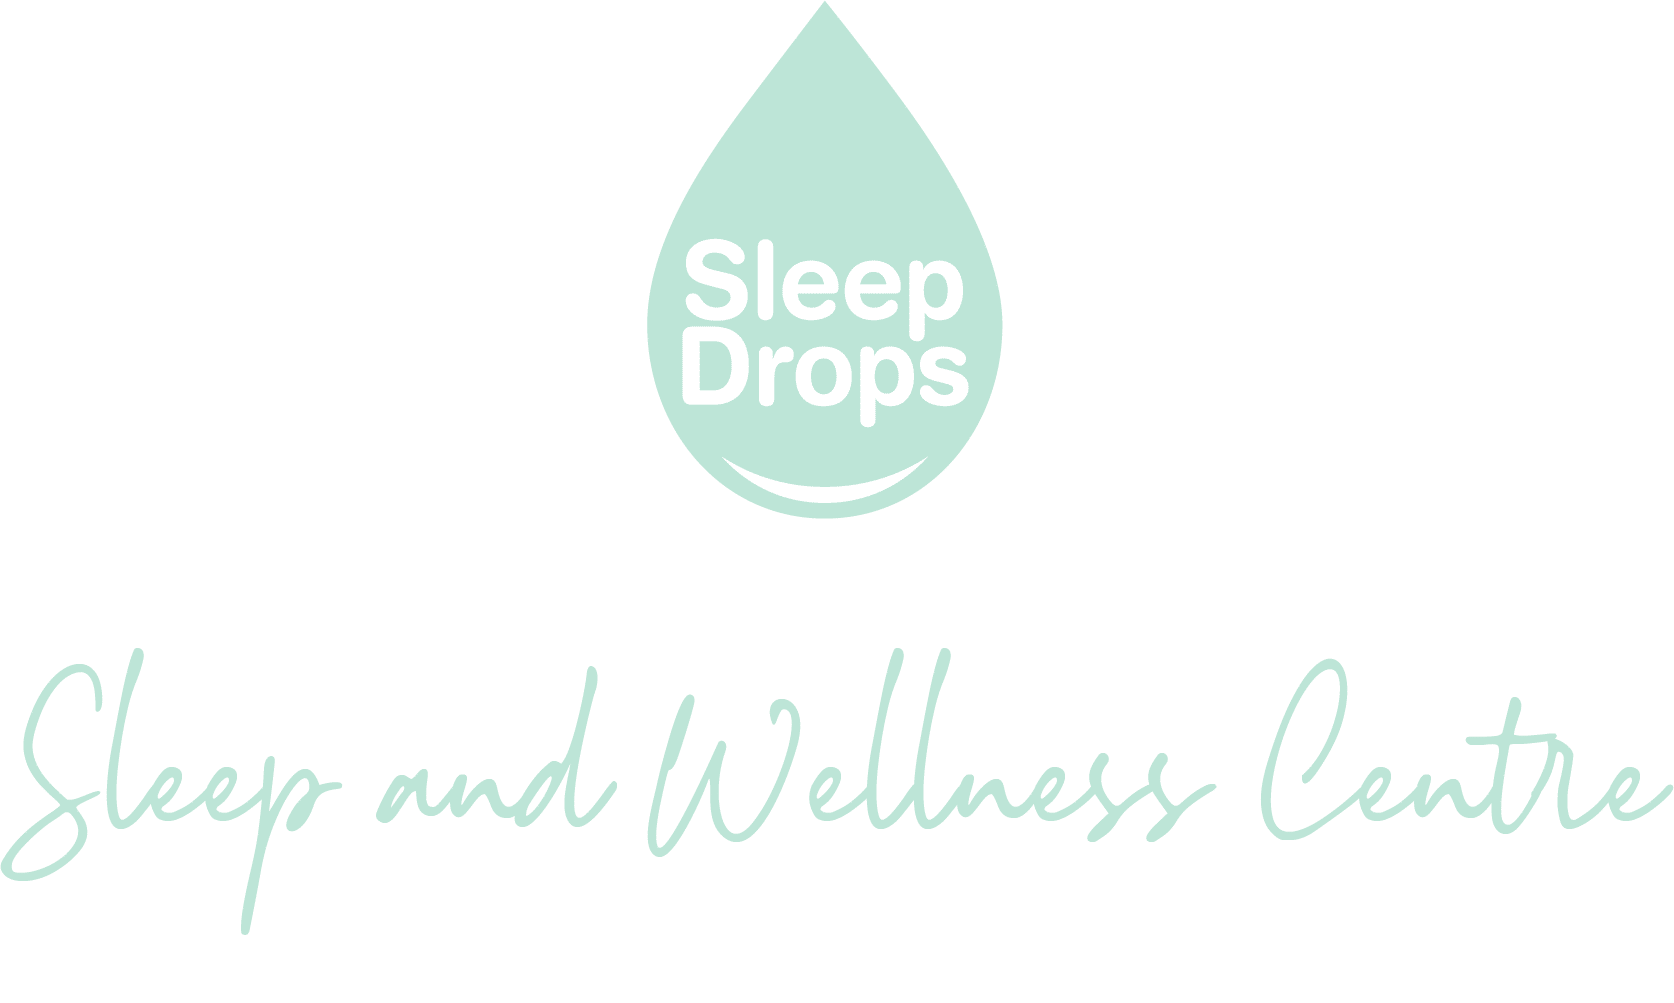 SLEEP AND WELLNESS CENTRE